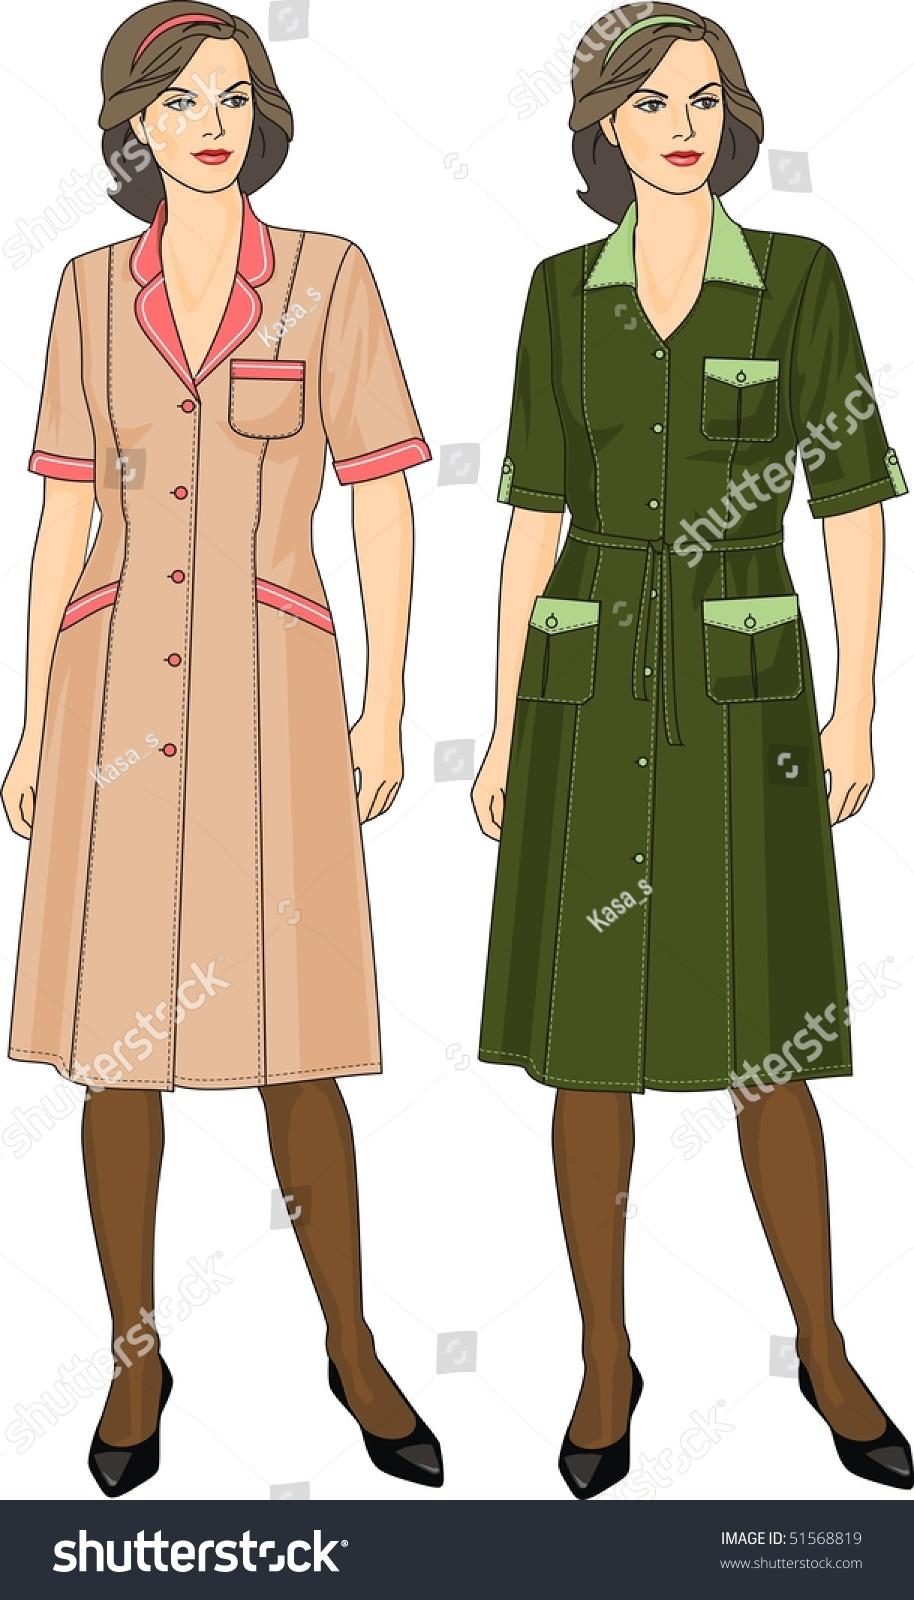 Woman Dressing Gown Short Sleeves Pockets Stock Vector HD (Royalty ...